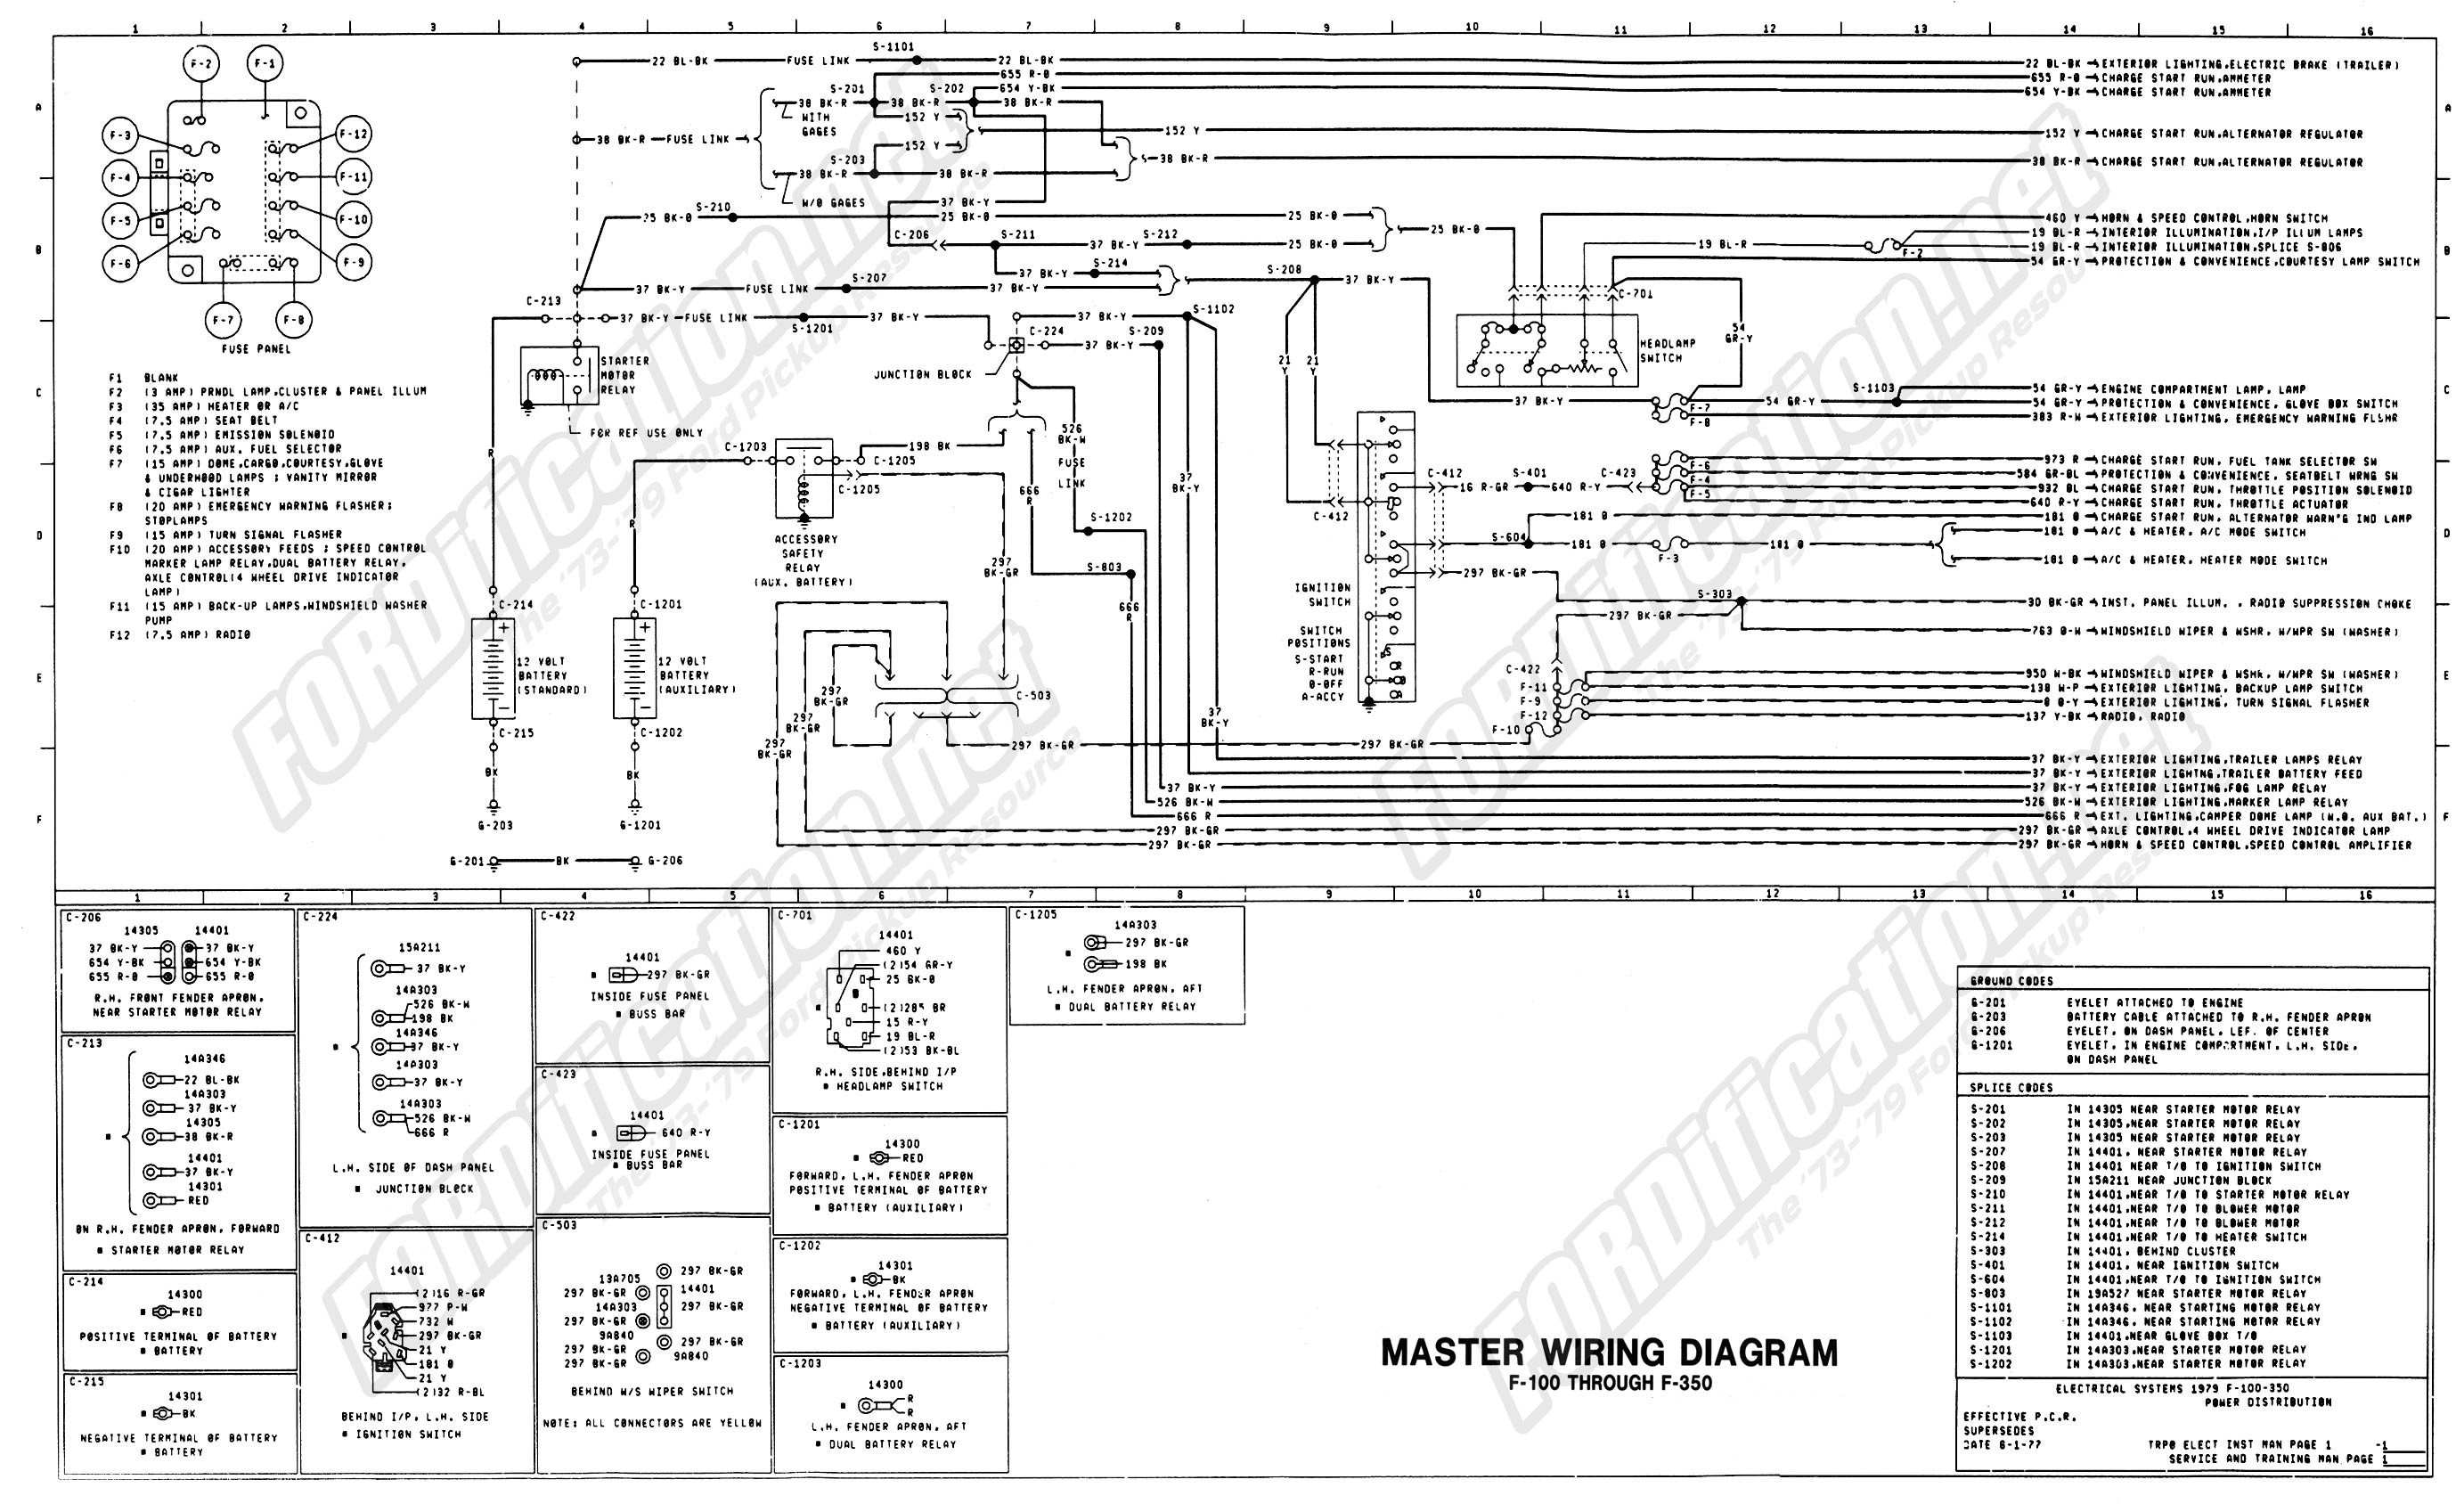 Ford Tractor Ignition Switch Wiring Diagram Beautiful Wiring Diagram 1979 ford F150 Ignition Switch and ford